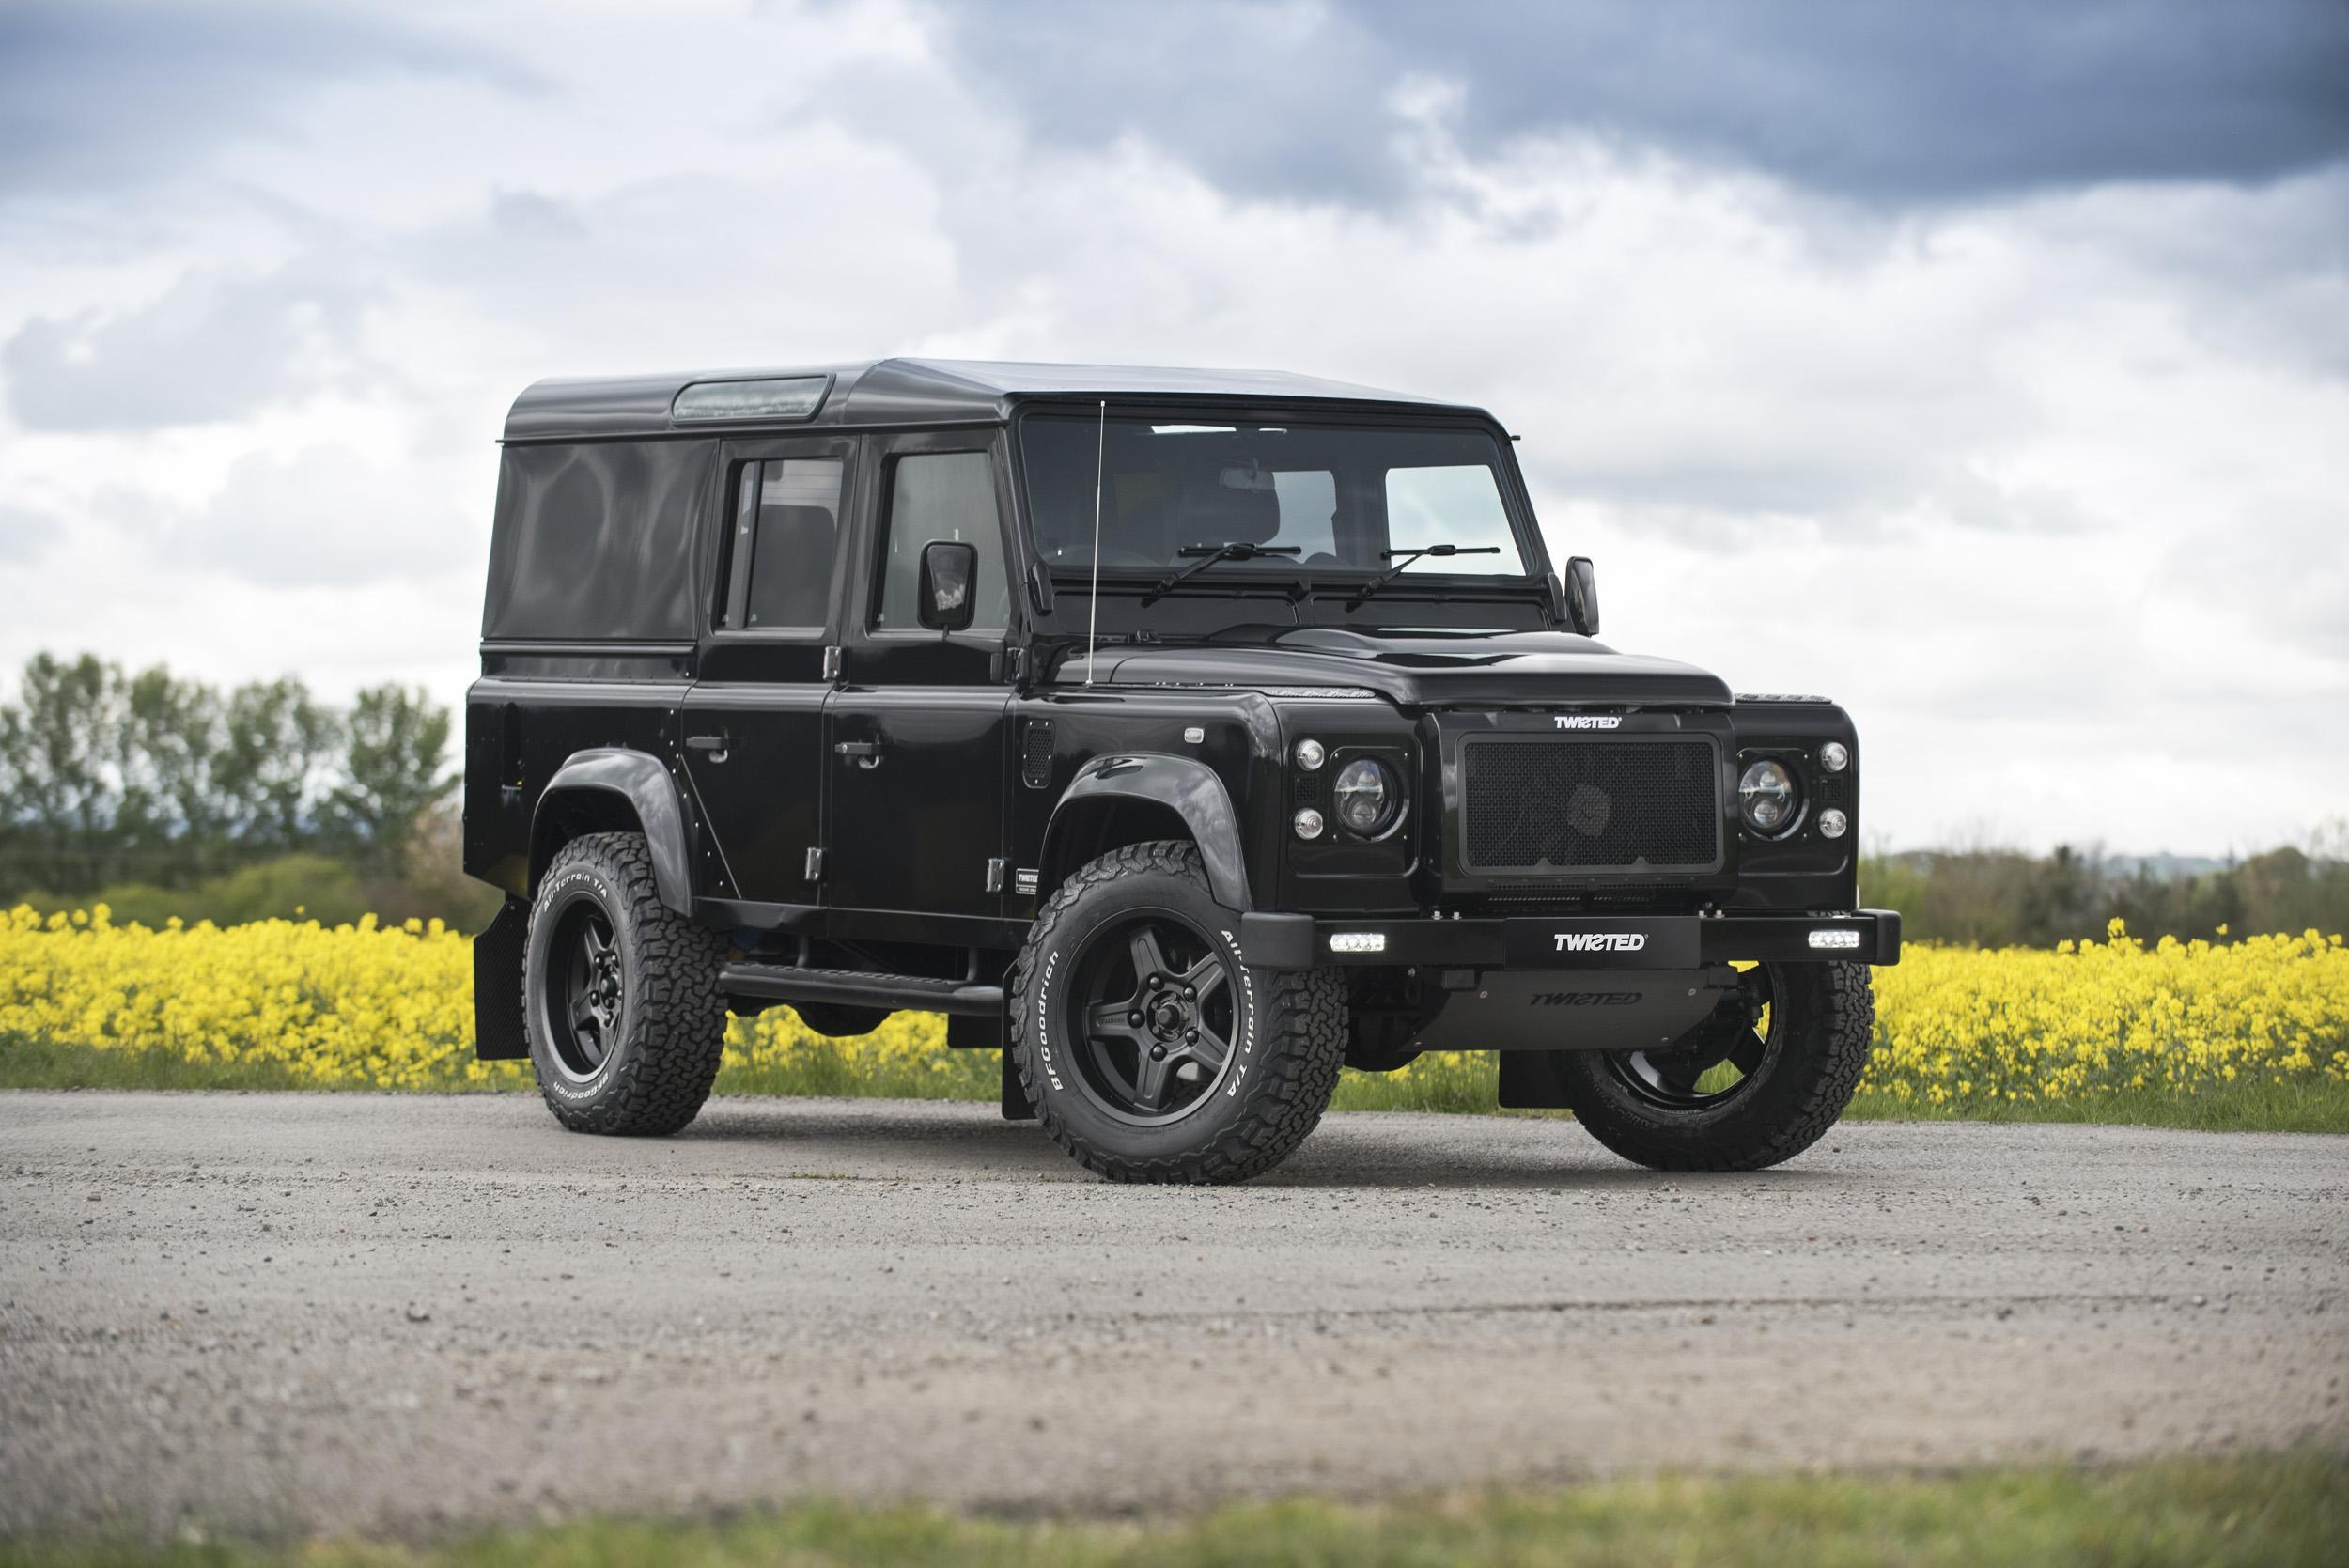 car review twisted land rover defender 110 utility the independent. Black Bedroom Furniture Sets. Home Design Ideas